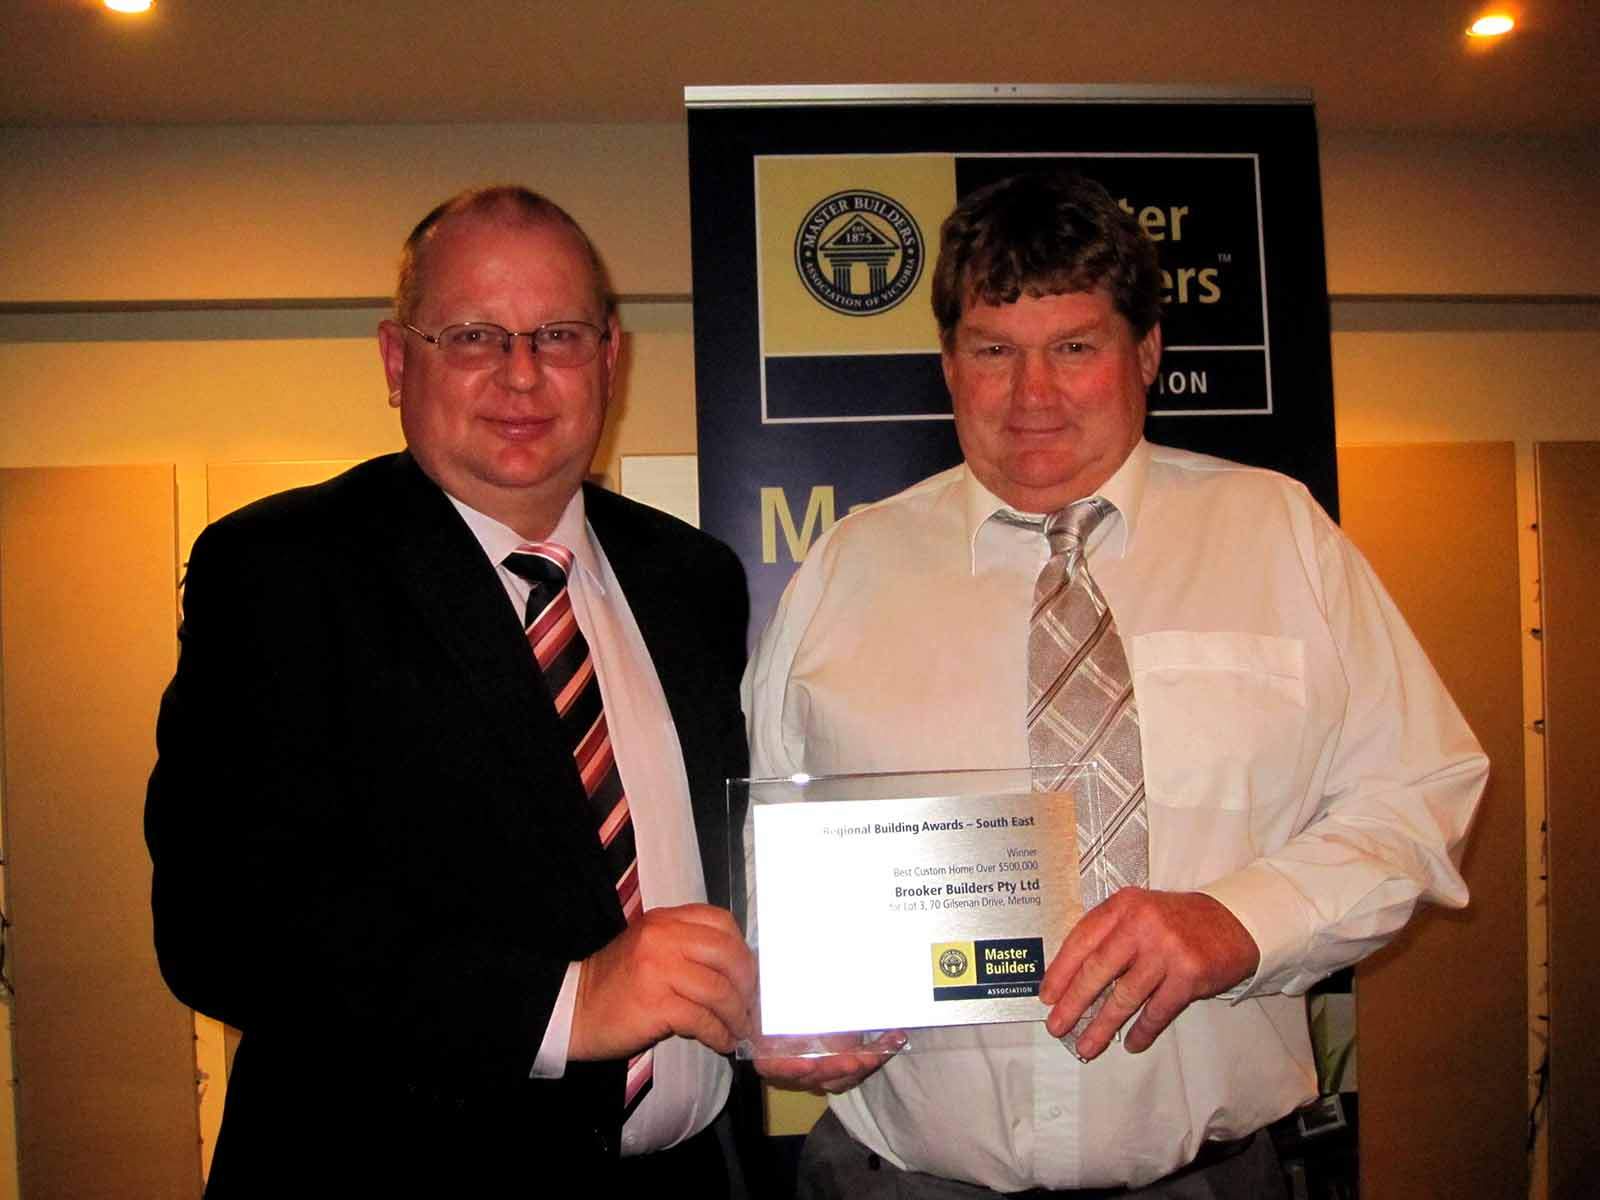 Miles award South East Brooker Builders 2010